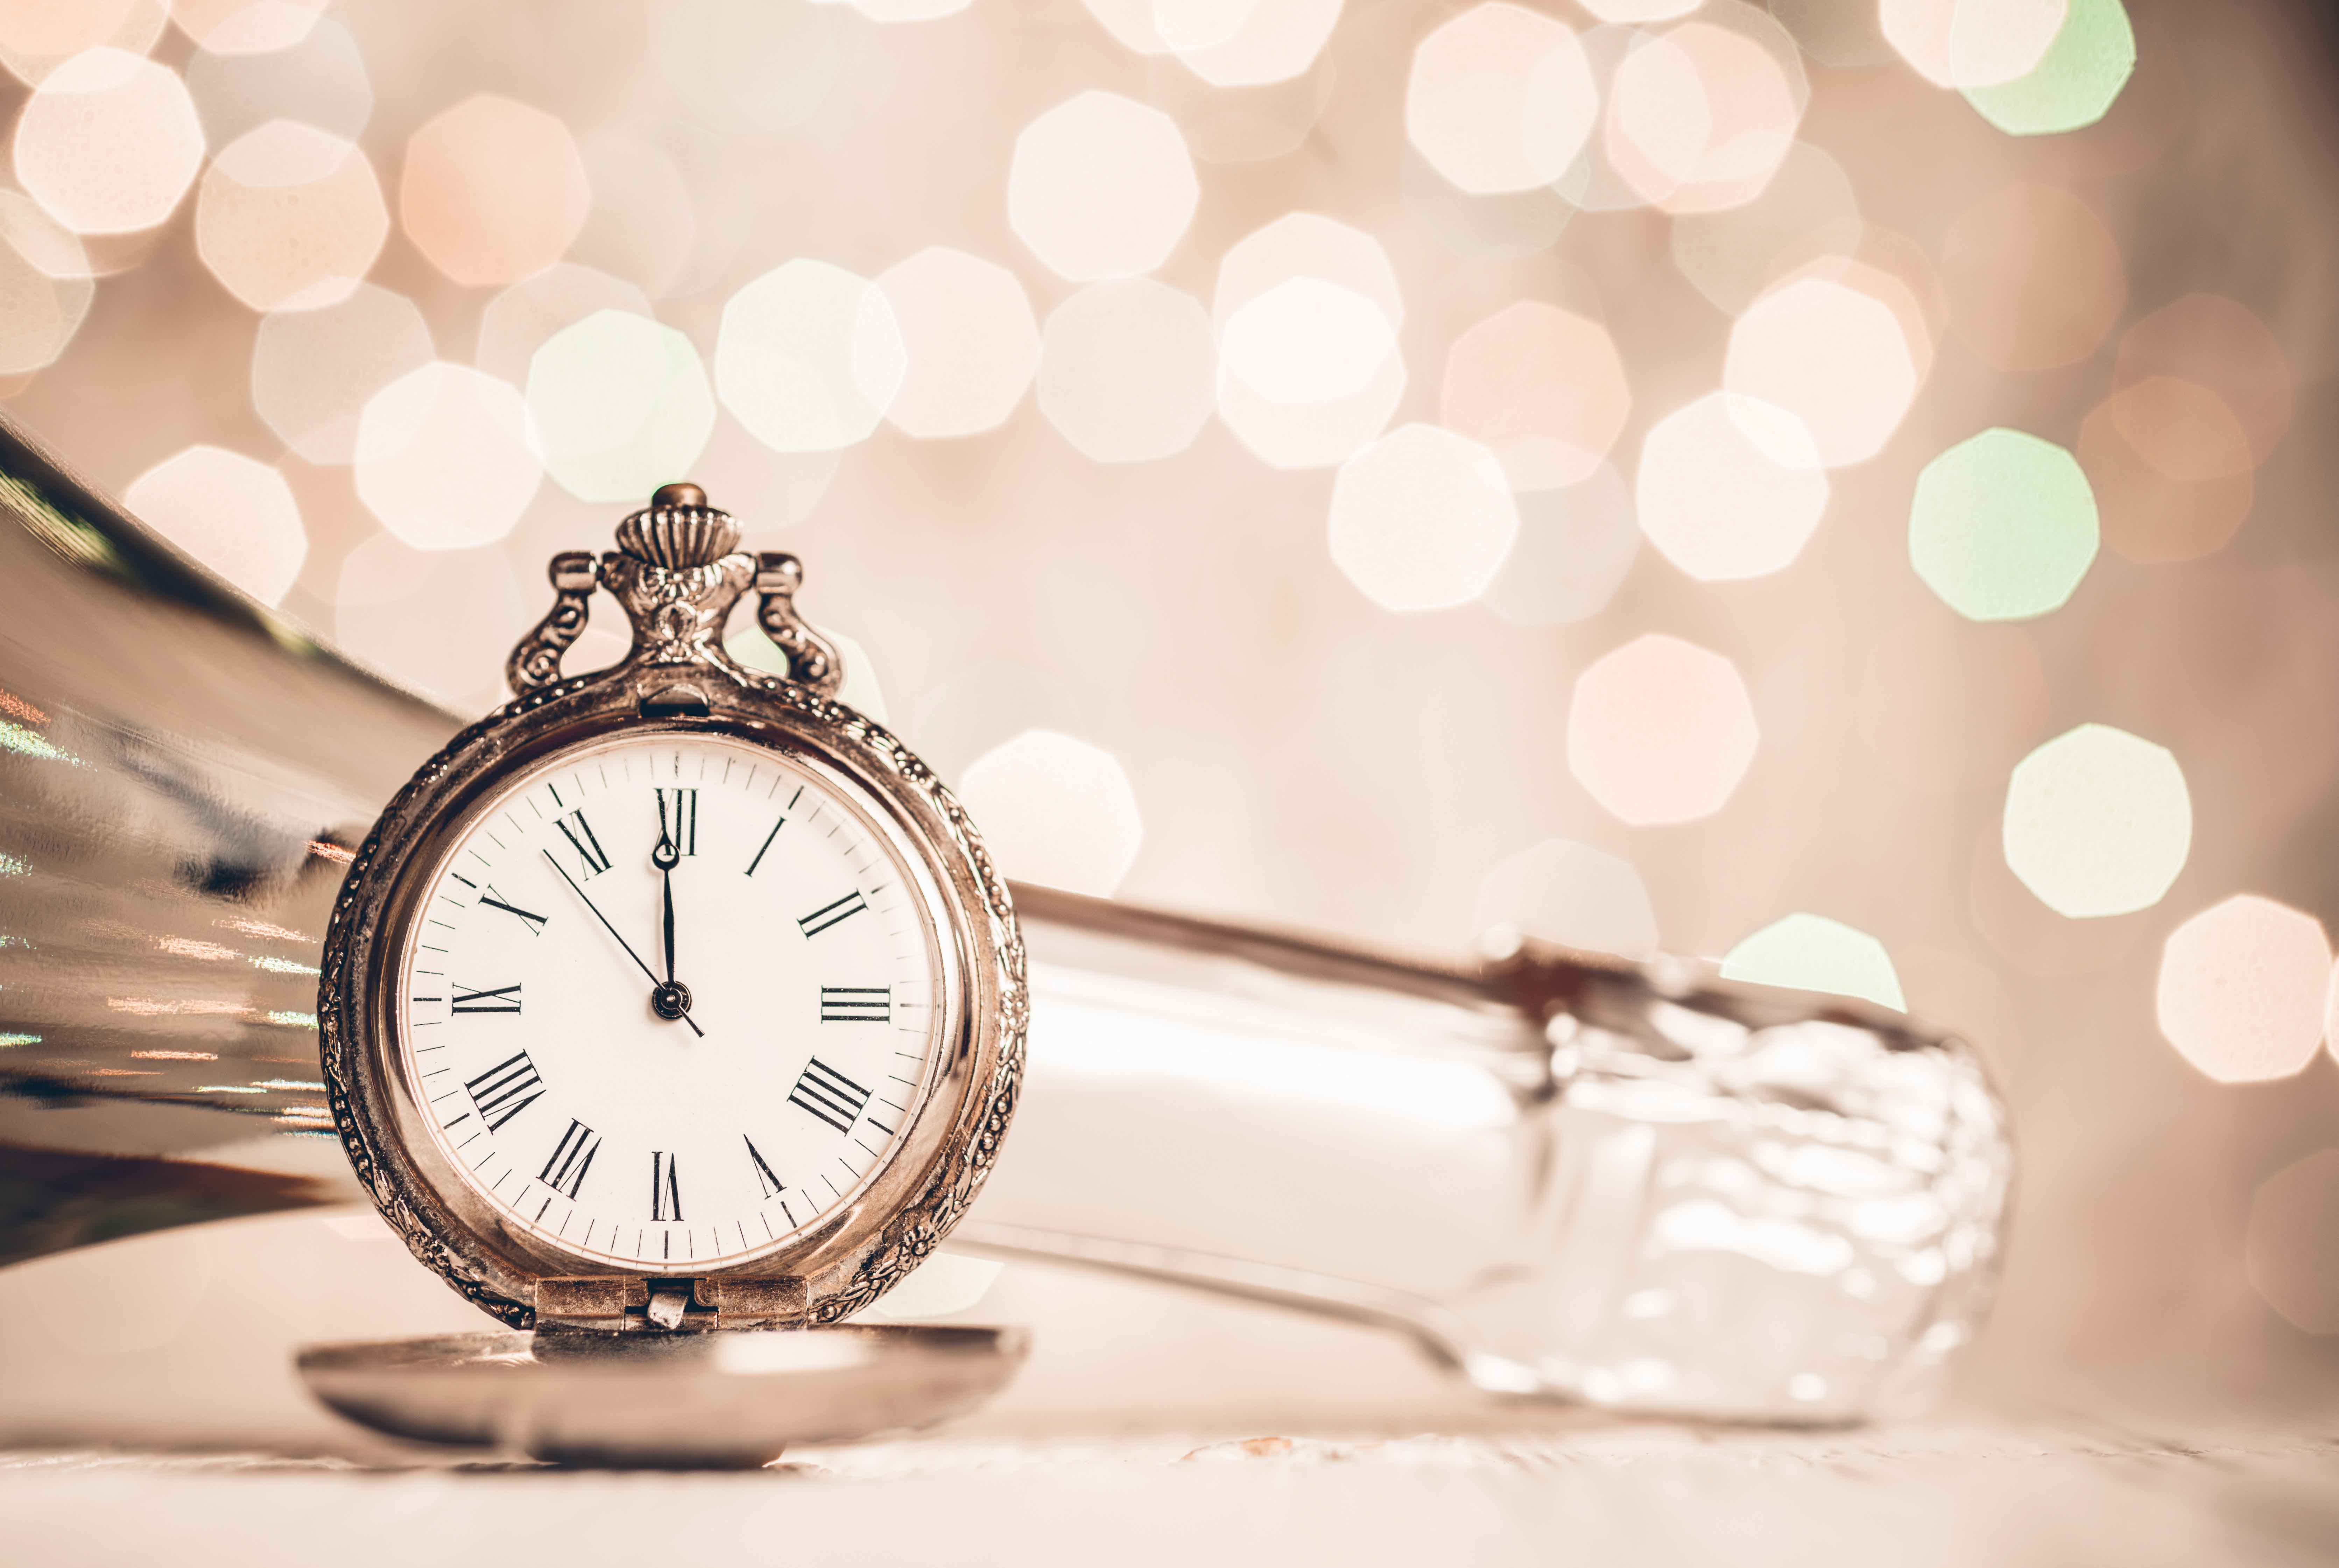 Counting down our most popular writing articles of 2019. This image features a pocketwatch at 12:00 midnight along with a sideways bottle of champagne on a gold and glittering background.